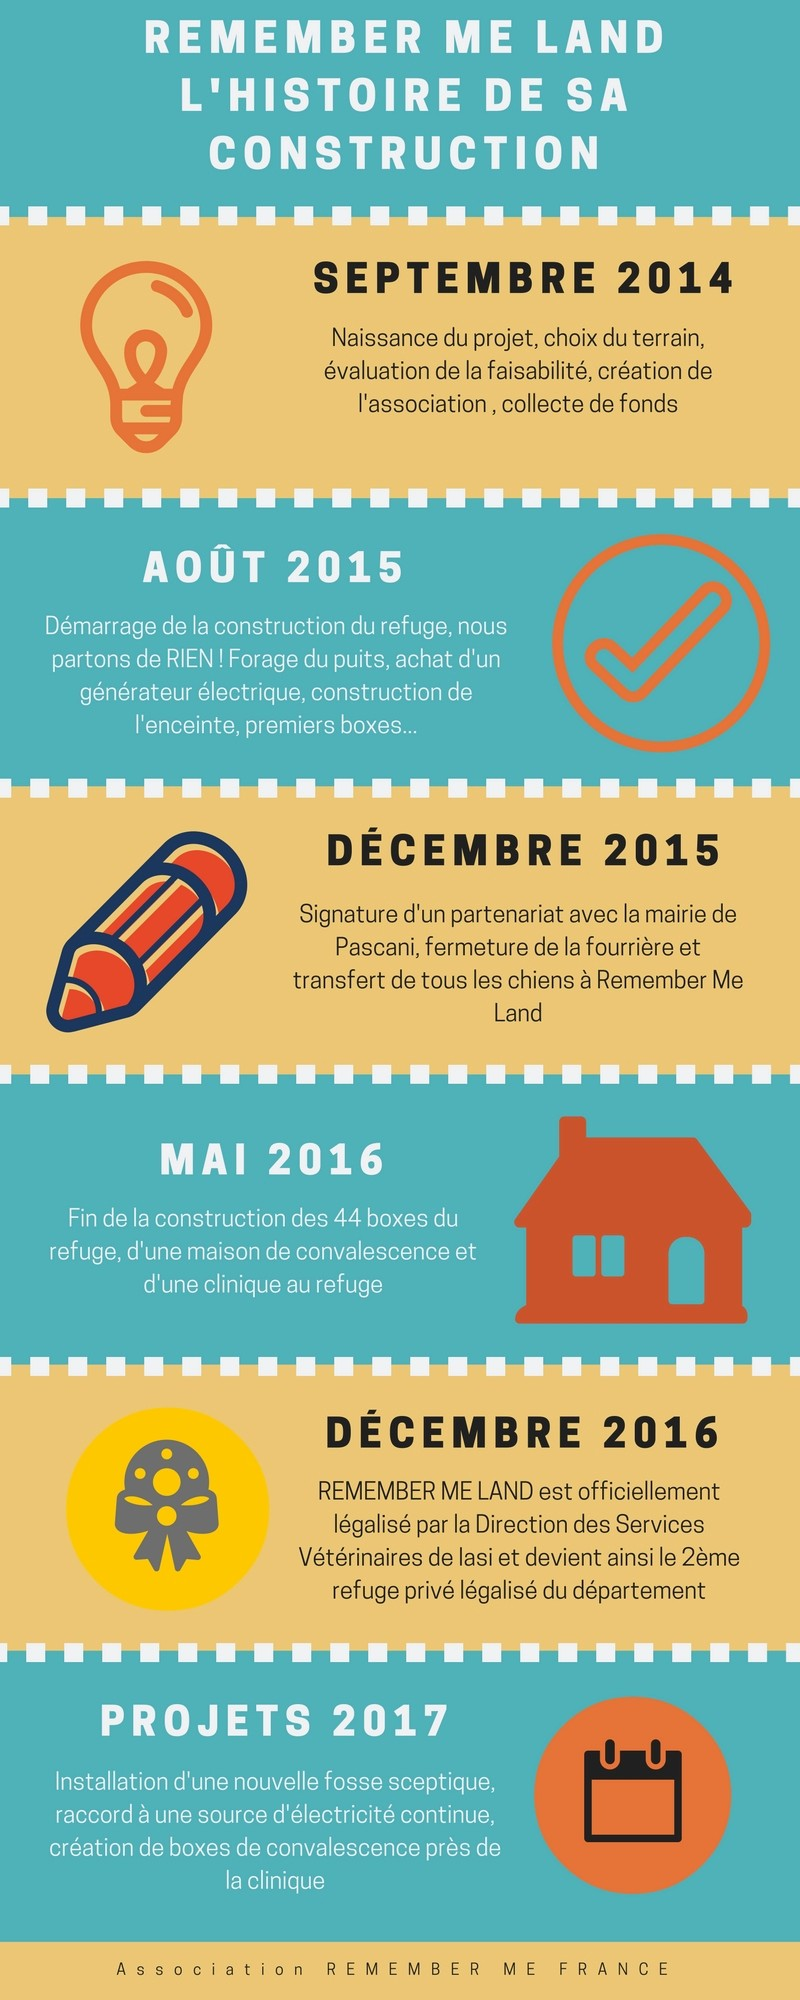 Infographie : LA CREATION DE REMEMBER ME LAND EN DATES Infogr11